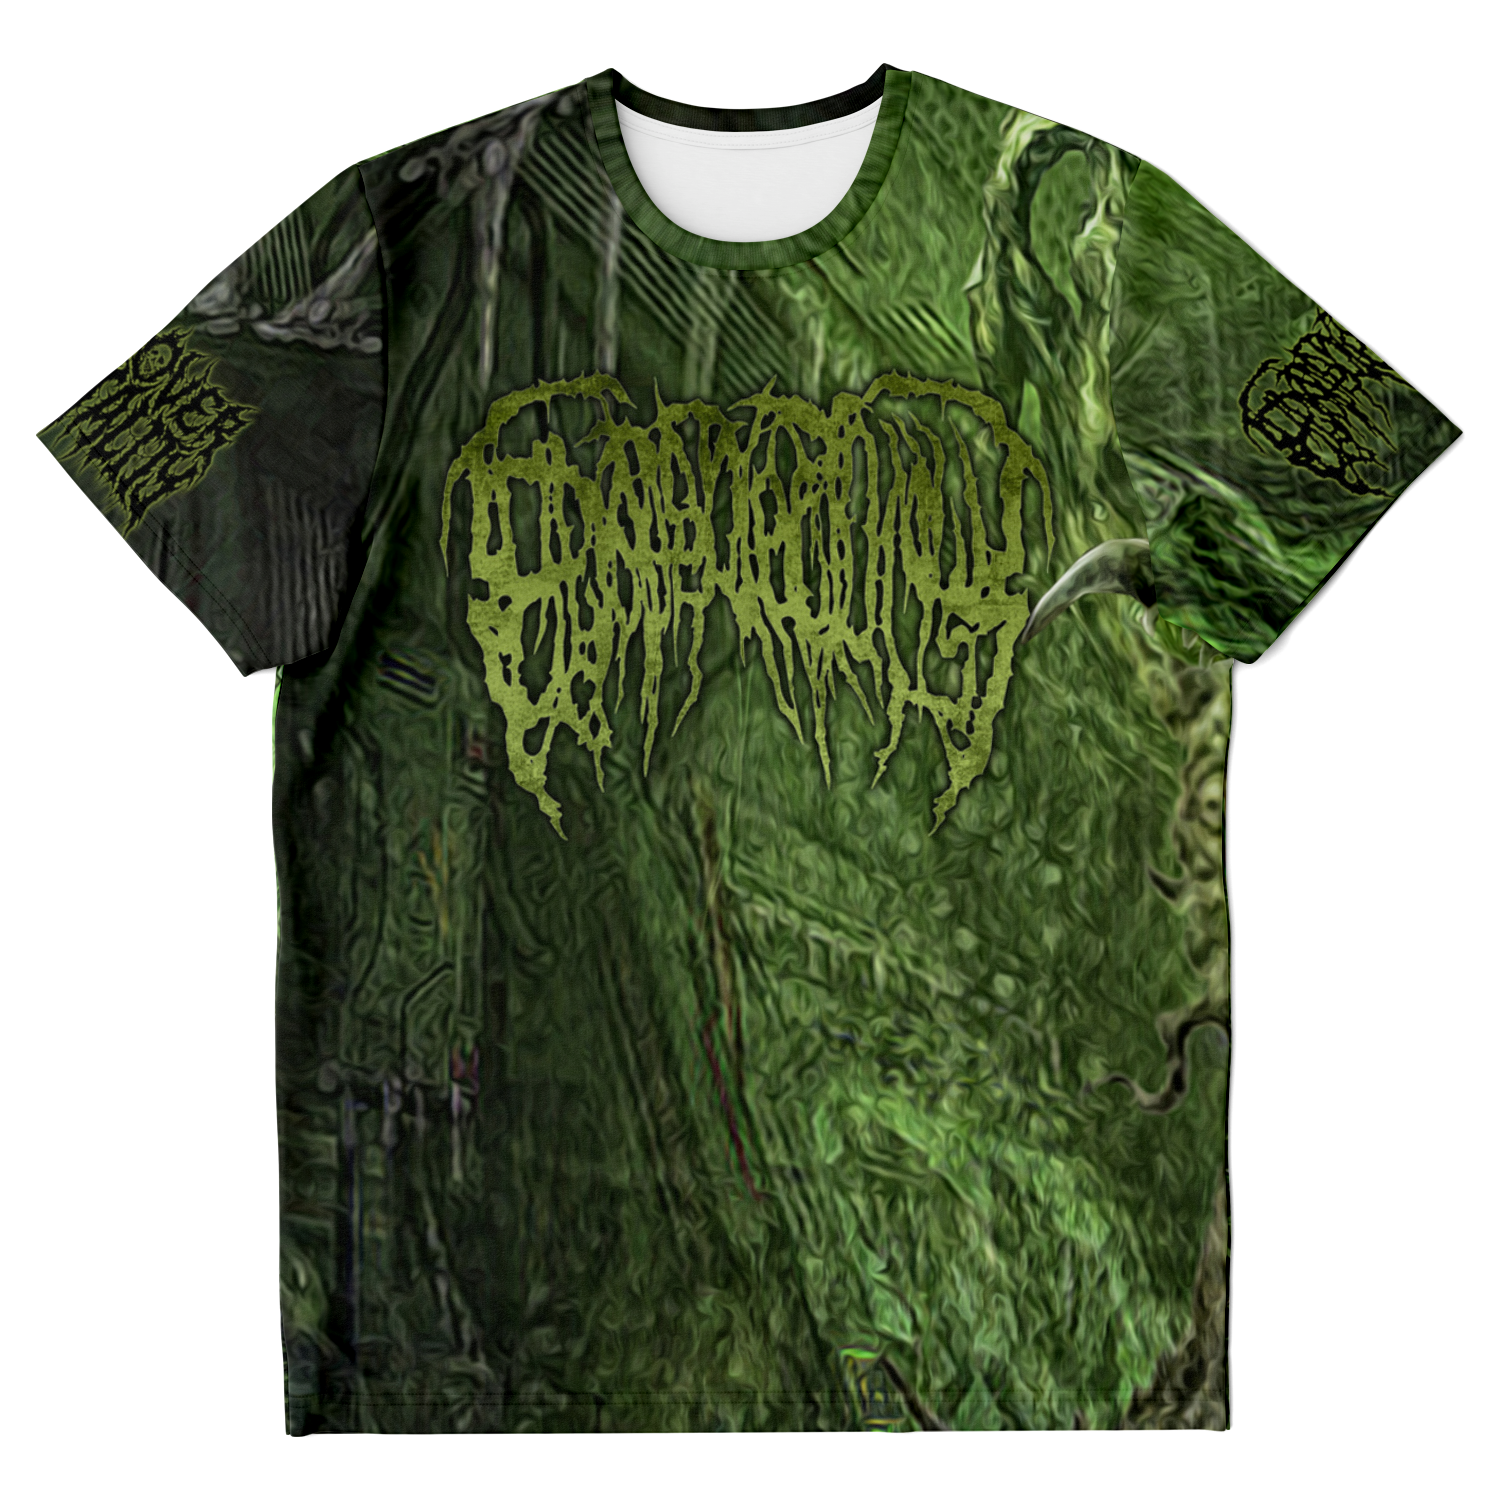 Officially Licensed Epicardiectomy - Putreseminal Morphodysplastic Virulency All Over Tee